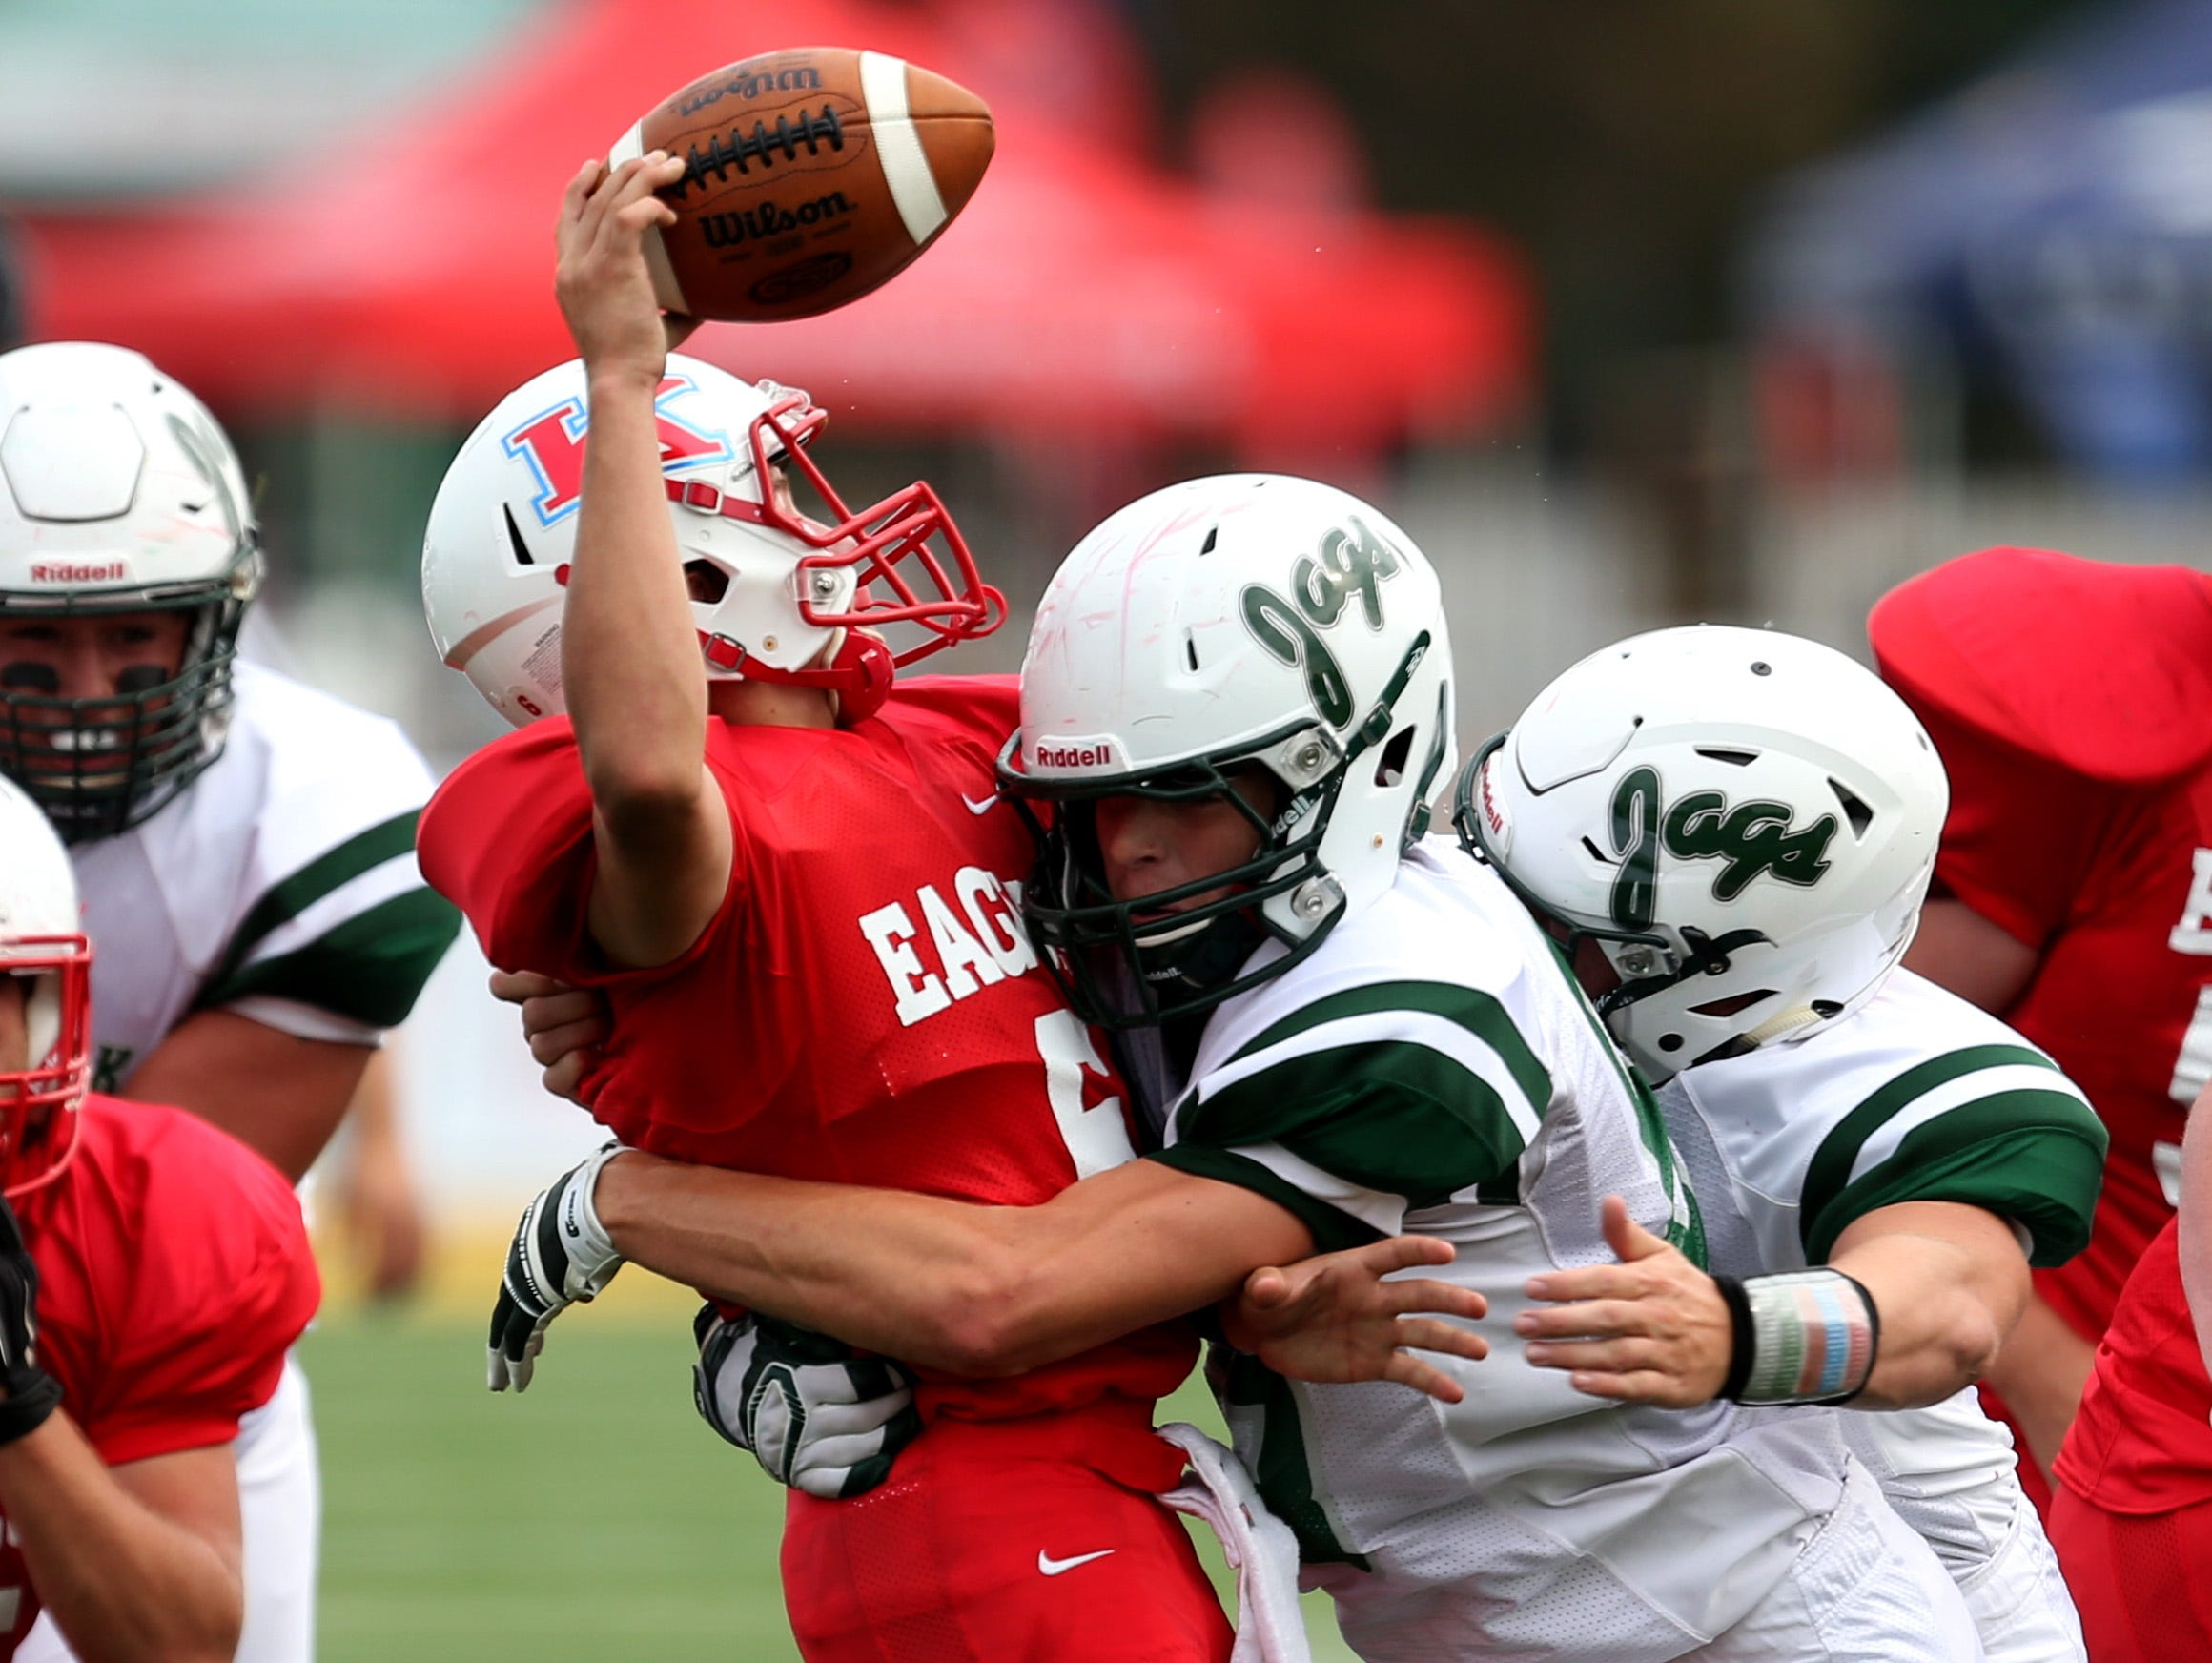 Allen Park's James Jr. Whiteford sacks Taylor Kennedy's Patrick Jackson during first-half action in the Prep Kickoff Classic on August 28, 2015 at Wayne States Tom Adams Field in Detroit Michigan.